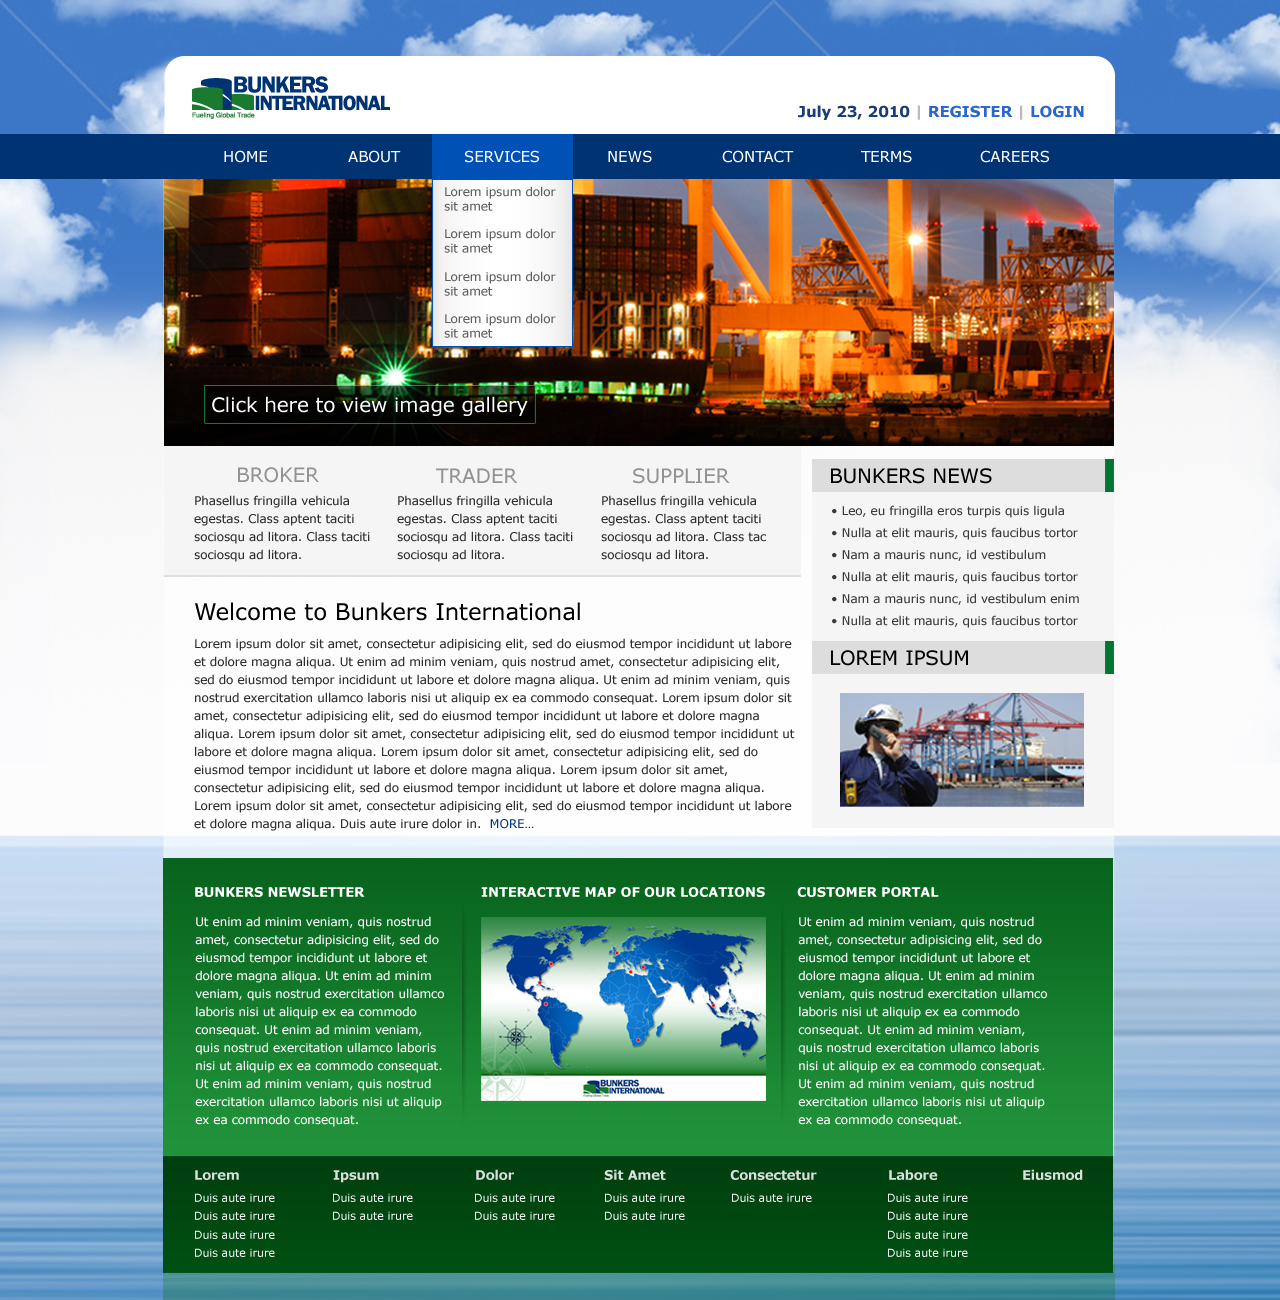 Website Design - Bunkers Int'l 02